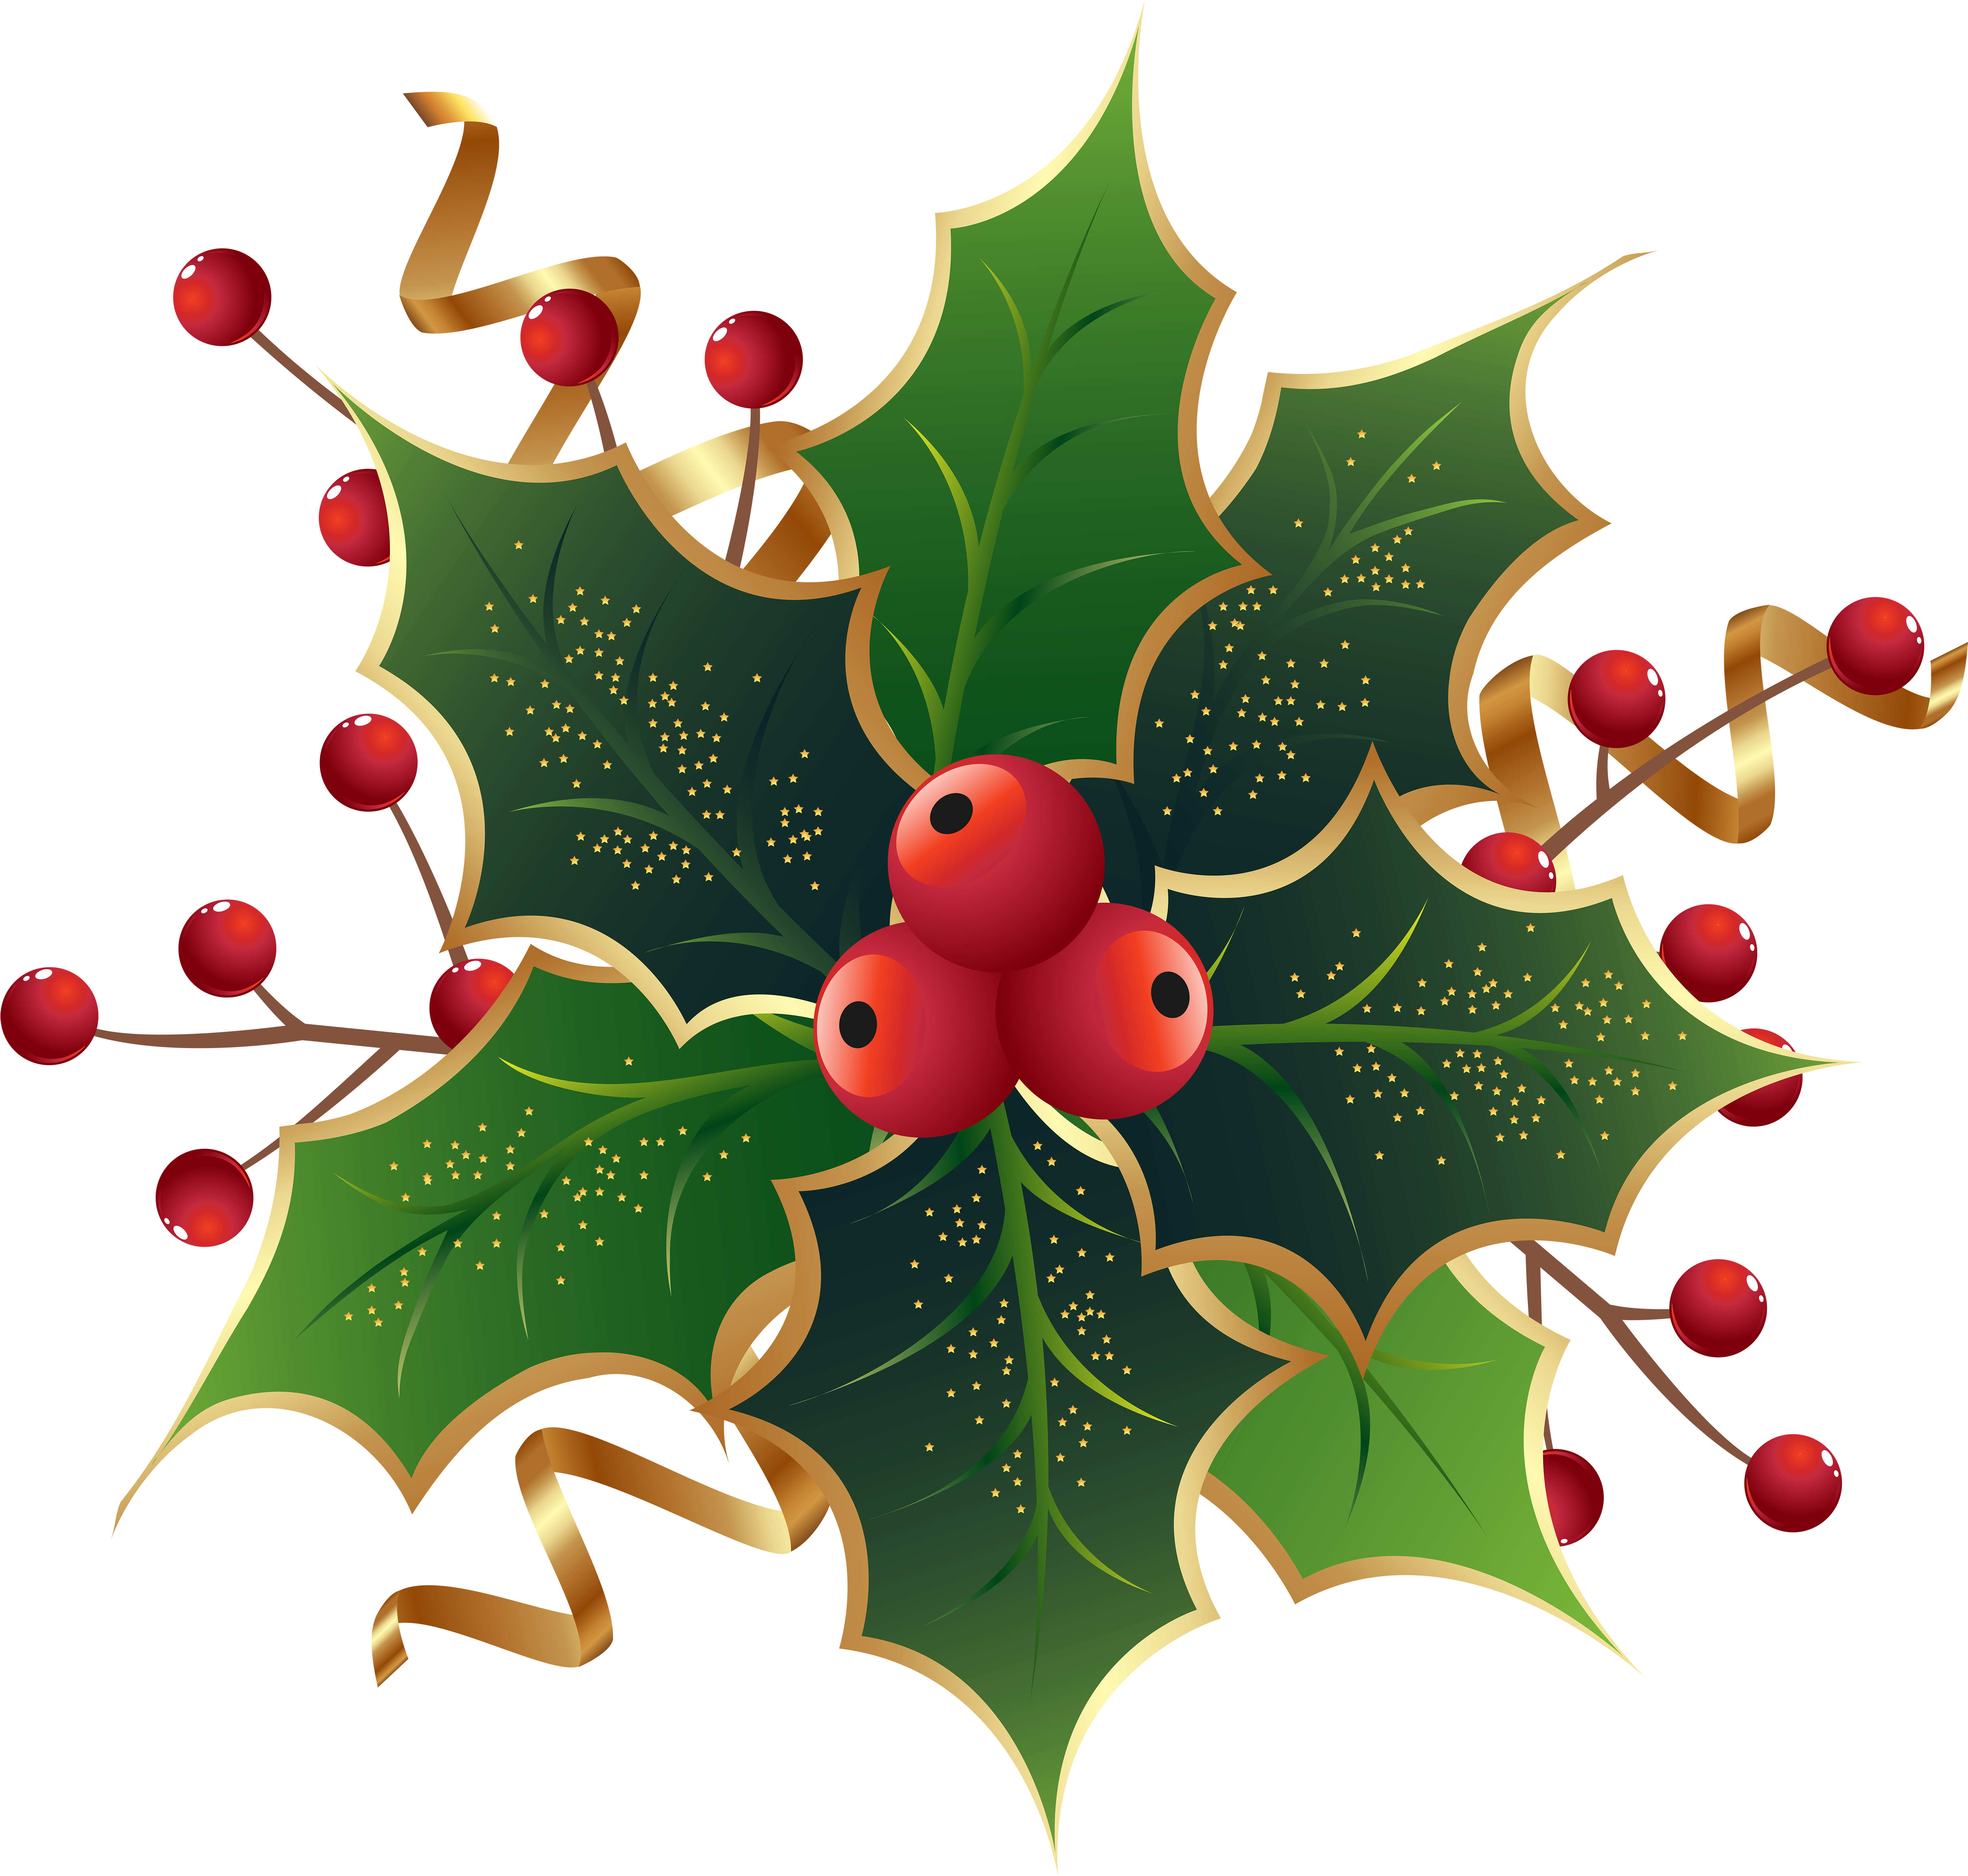 Download and share clipart about Christmas Holly Mistletoe